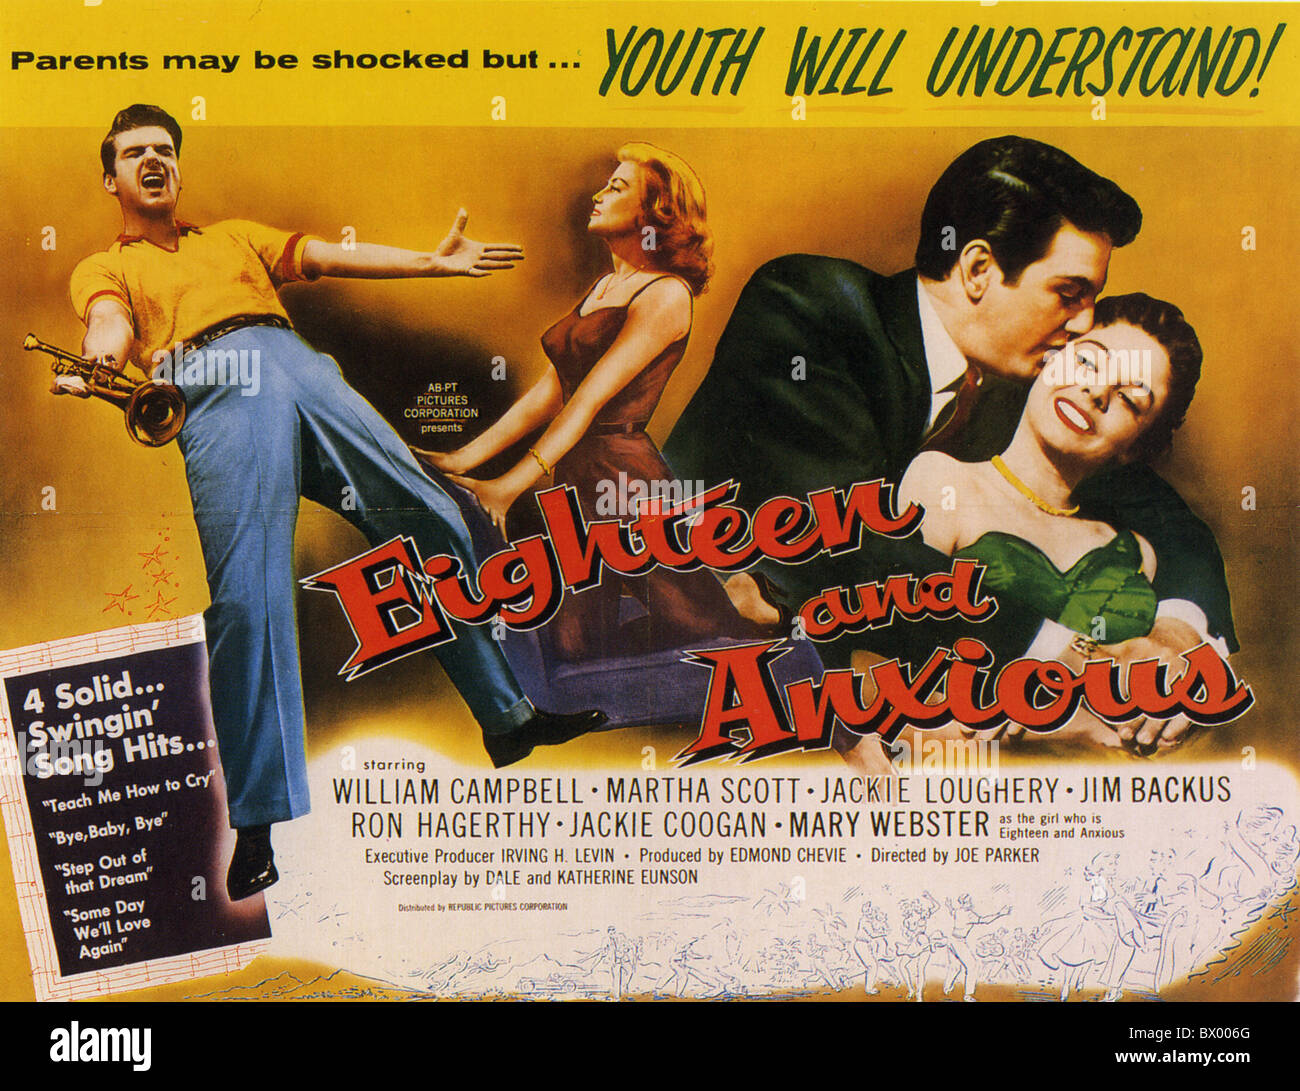 EIGHTEEN AND ANXIOUS Poster for 1957 Republic film with Mary Webster and Jim Backus - Stock Image